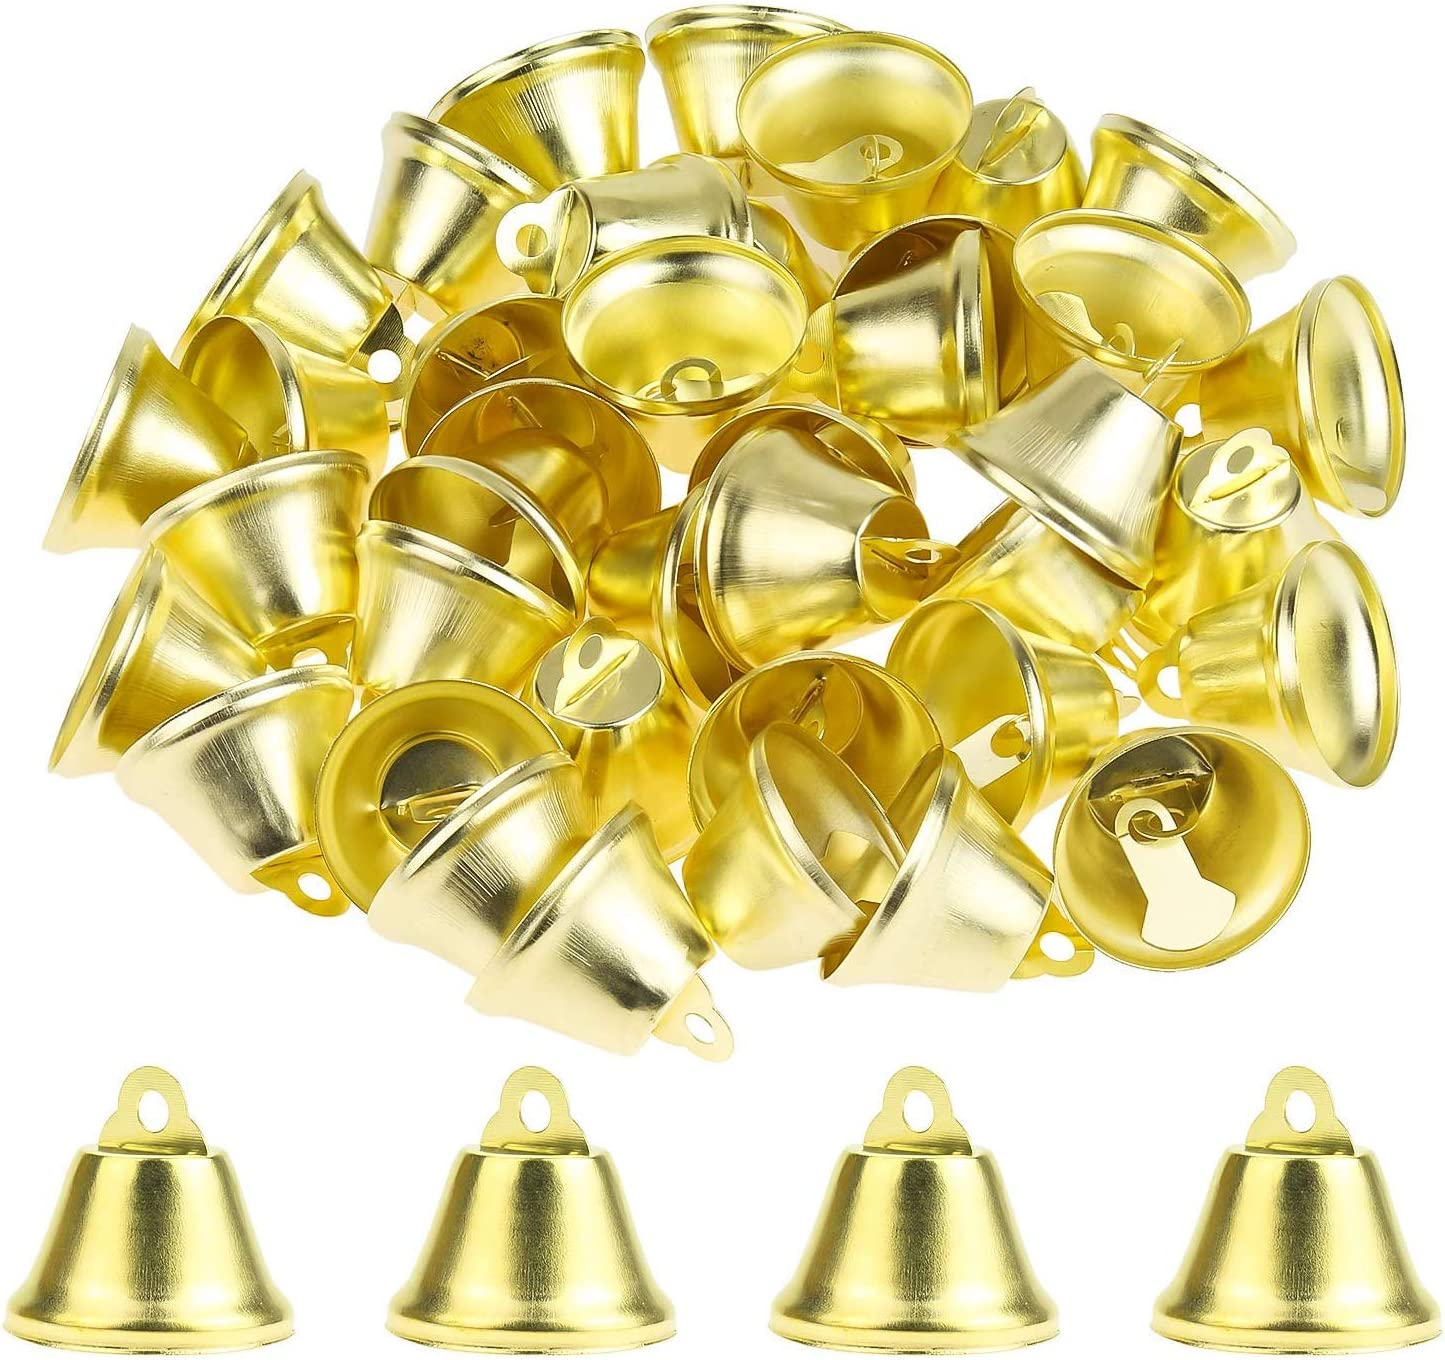 Powlankou 80 Pieces 26mm/1inch Shiny Bells Liberty Bells Decor Bells Craft Bells for Christmas Wind Chimes Making Crafts Decorations